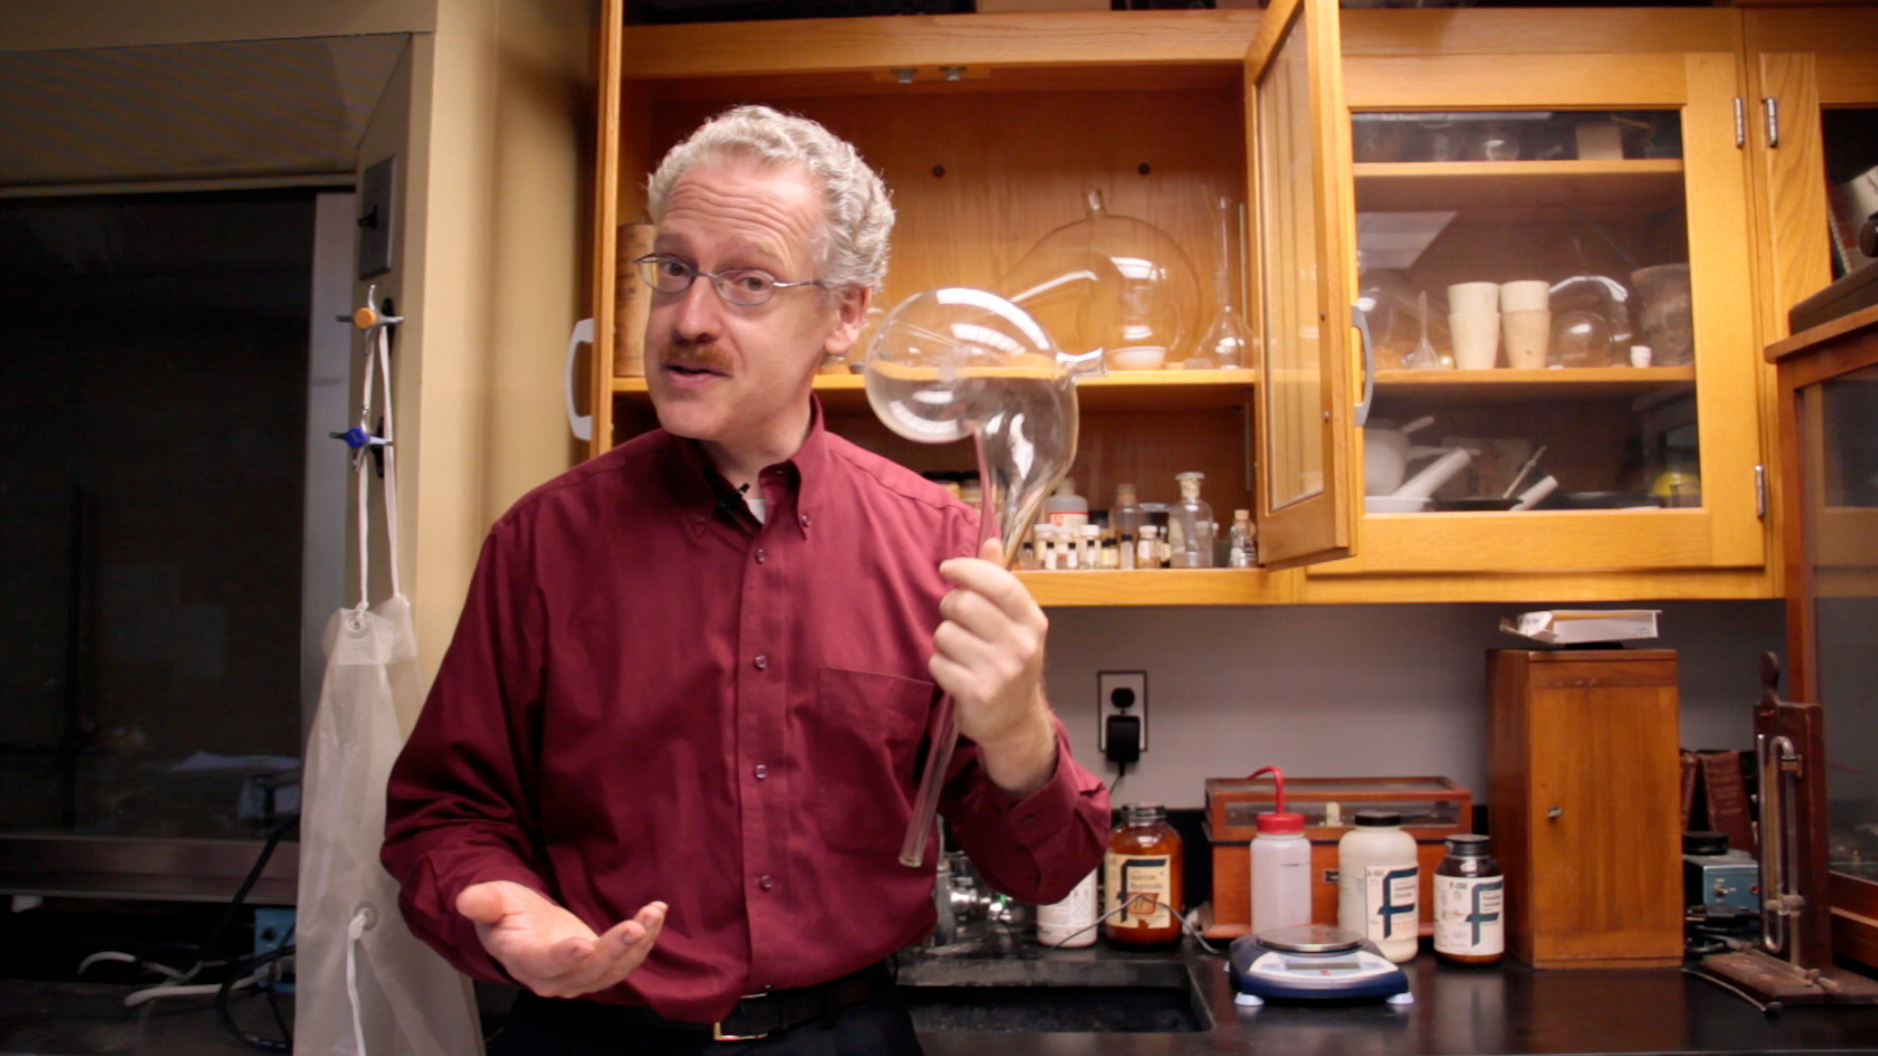 Scientist with chemistry glassware